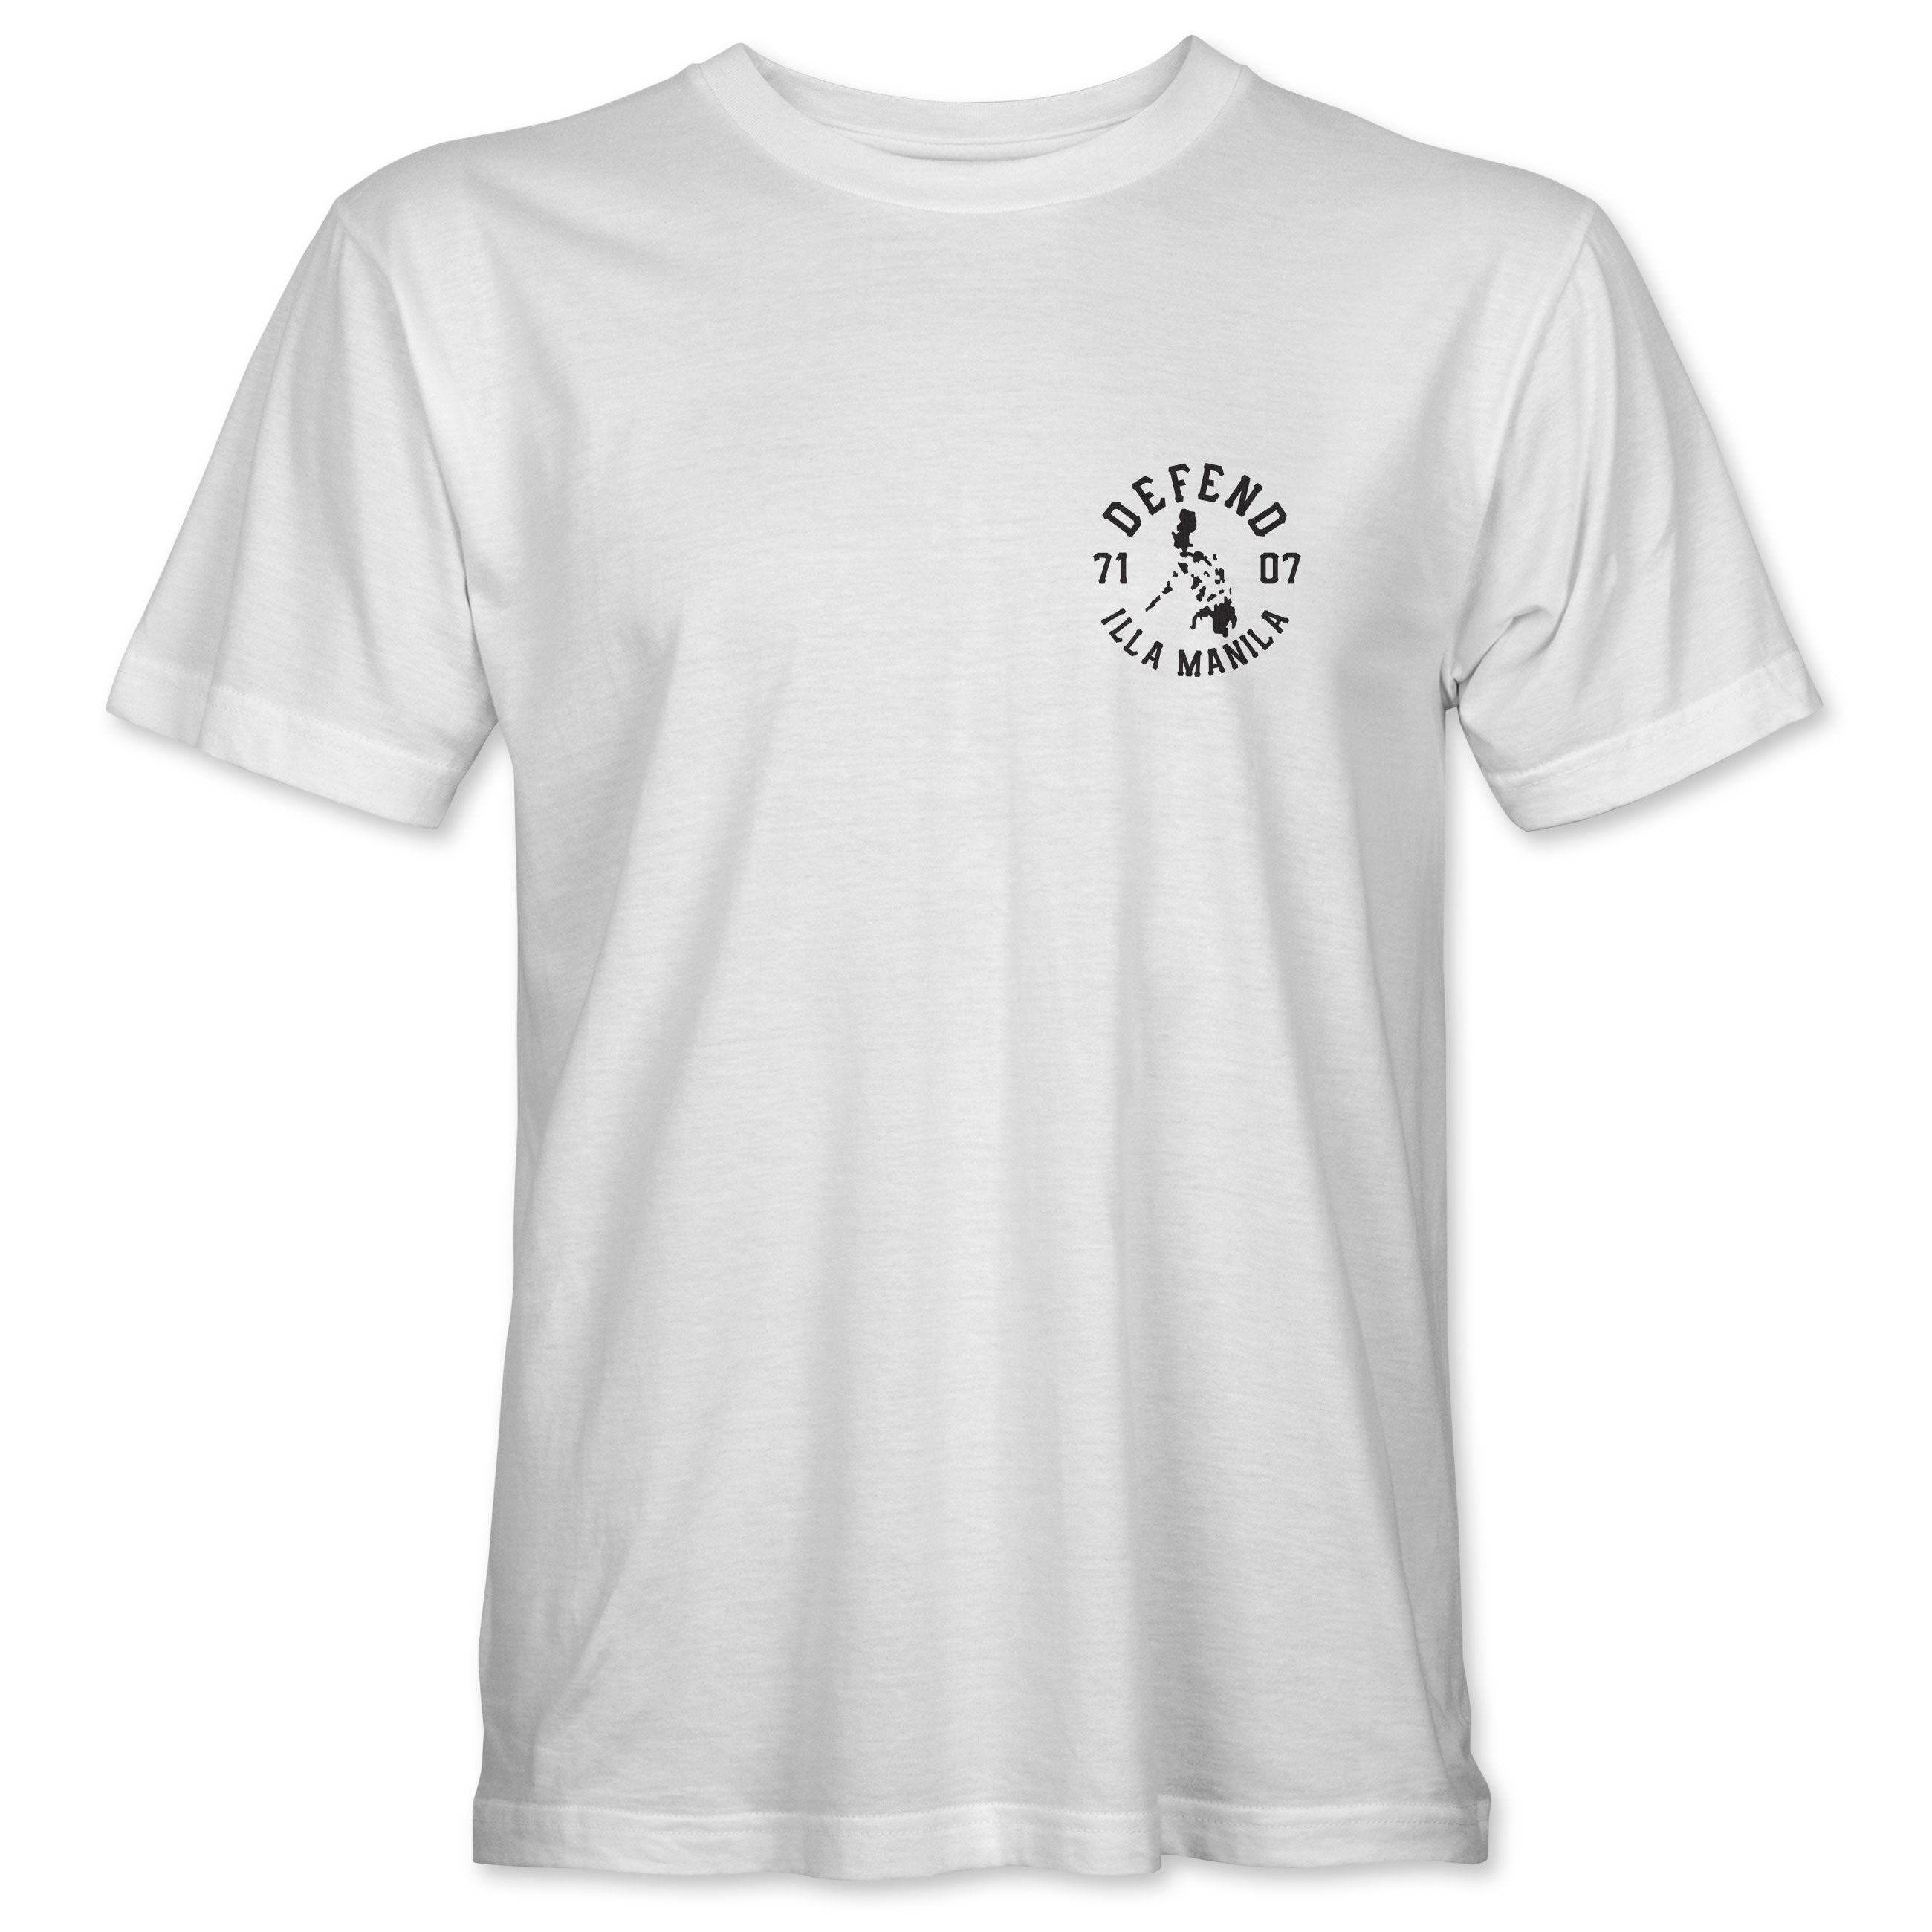 Defend the 7107 Islands T-shirt - White